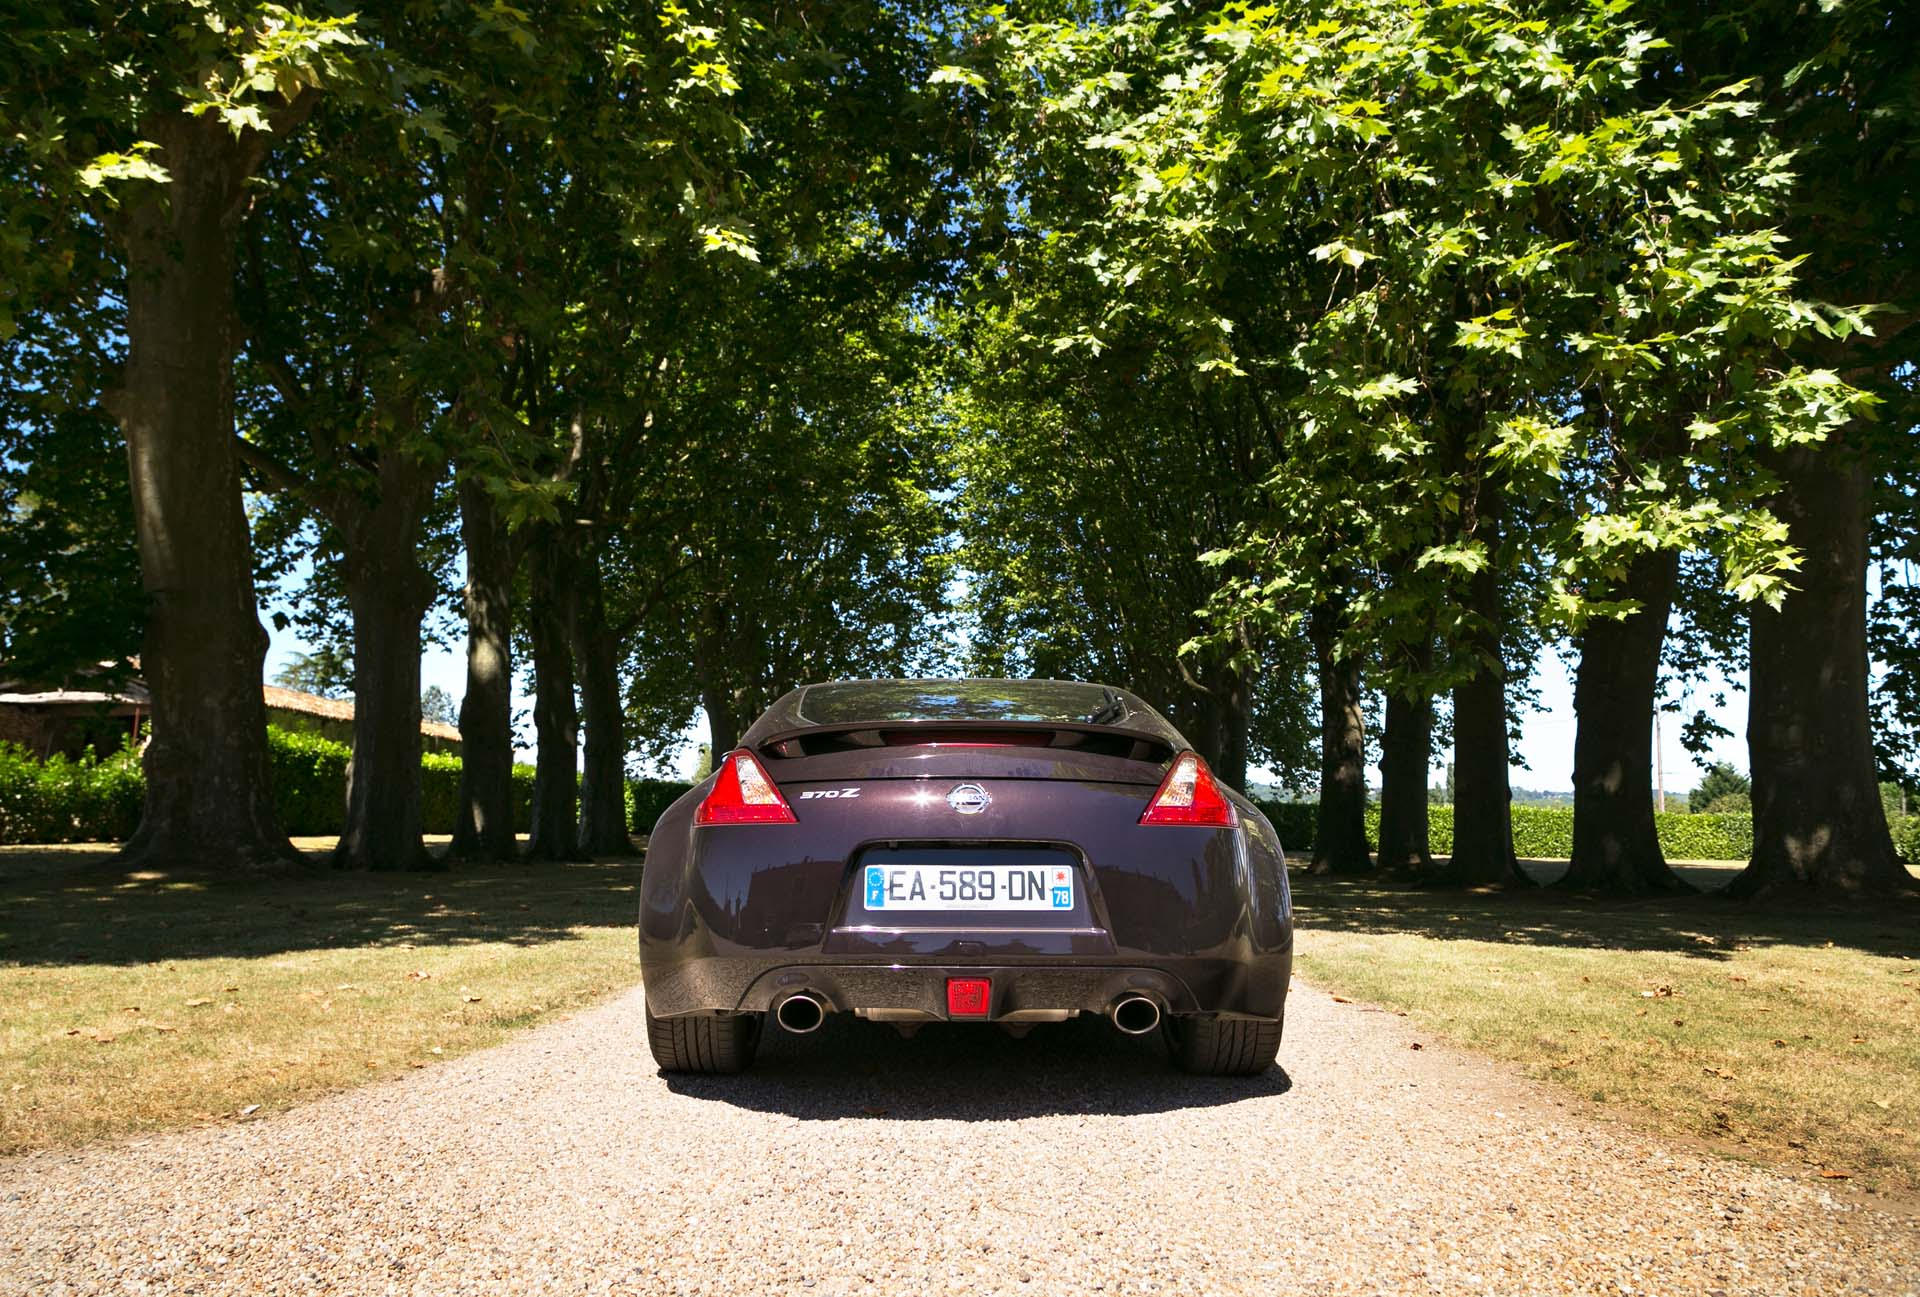 2016 Nissan 370Z European Road Trip